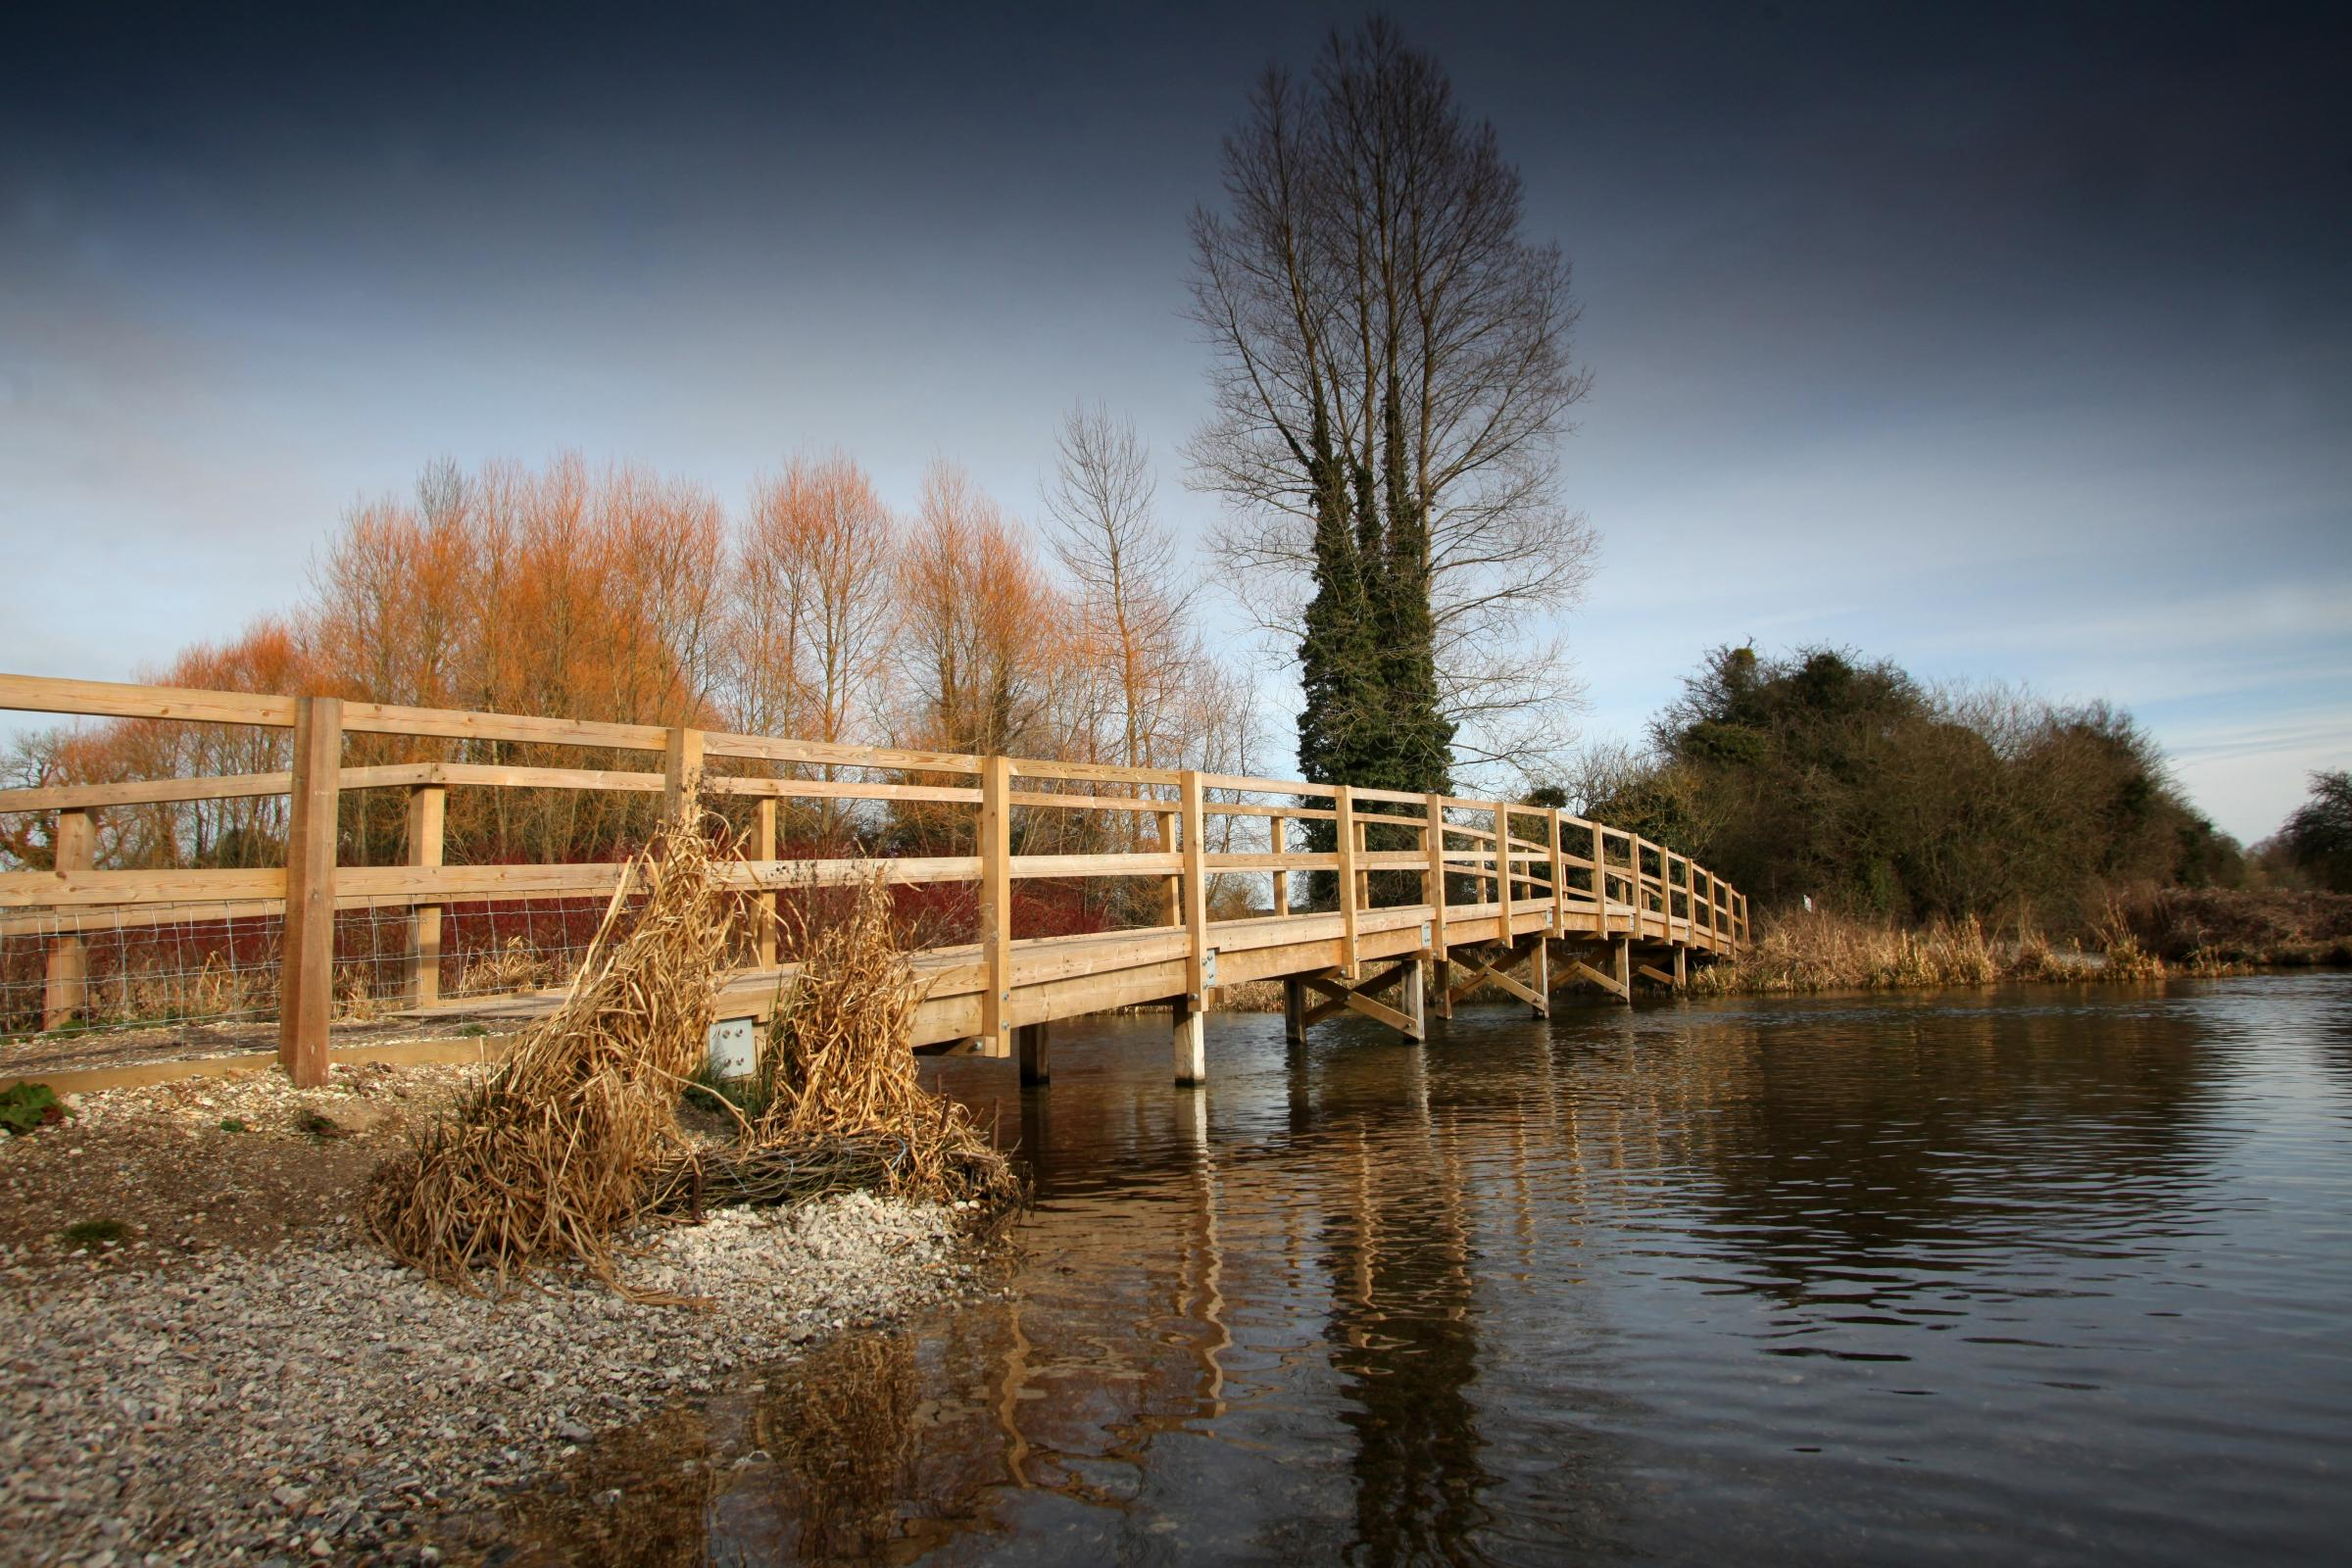 20 Feb 2012 - Hidden Hampshire - Footbridge over the River Test on the Clarendon Way at the village of Houghton.